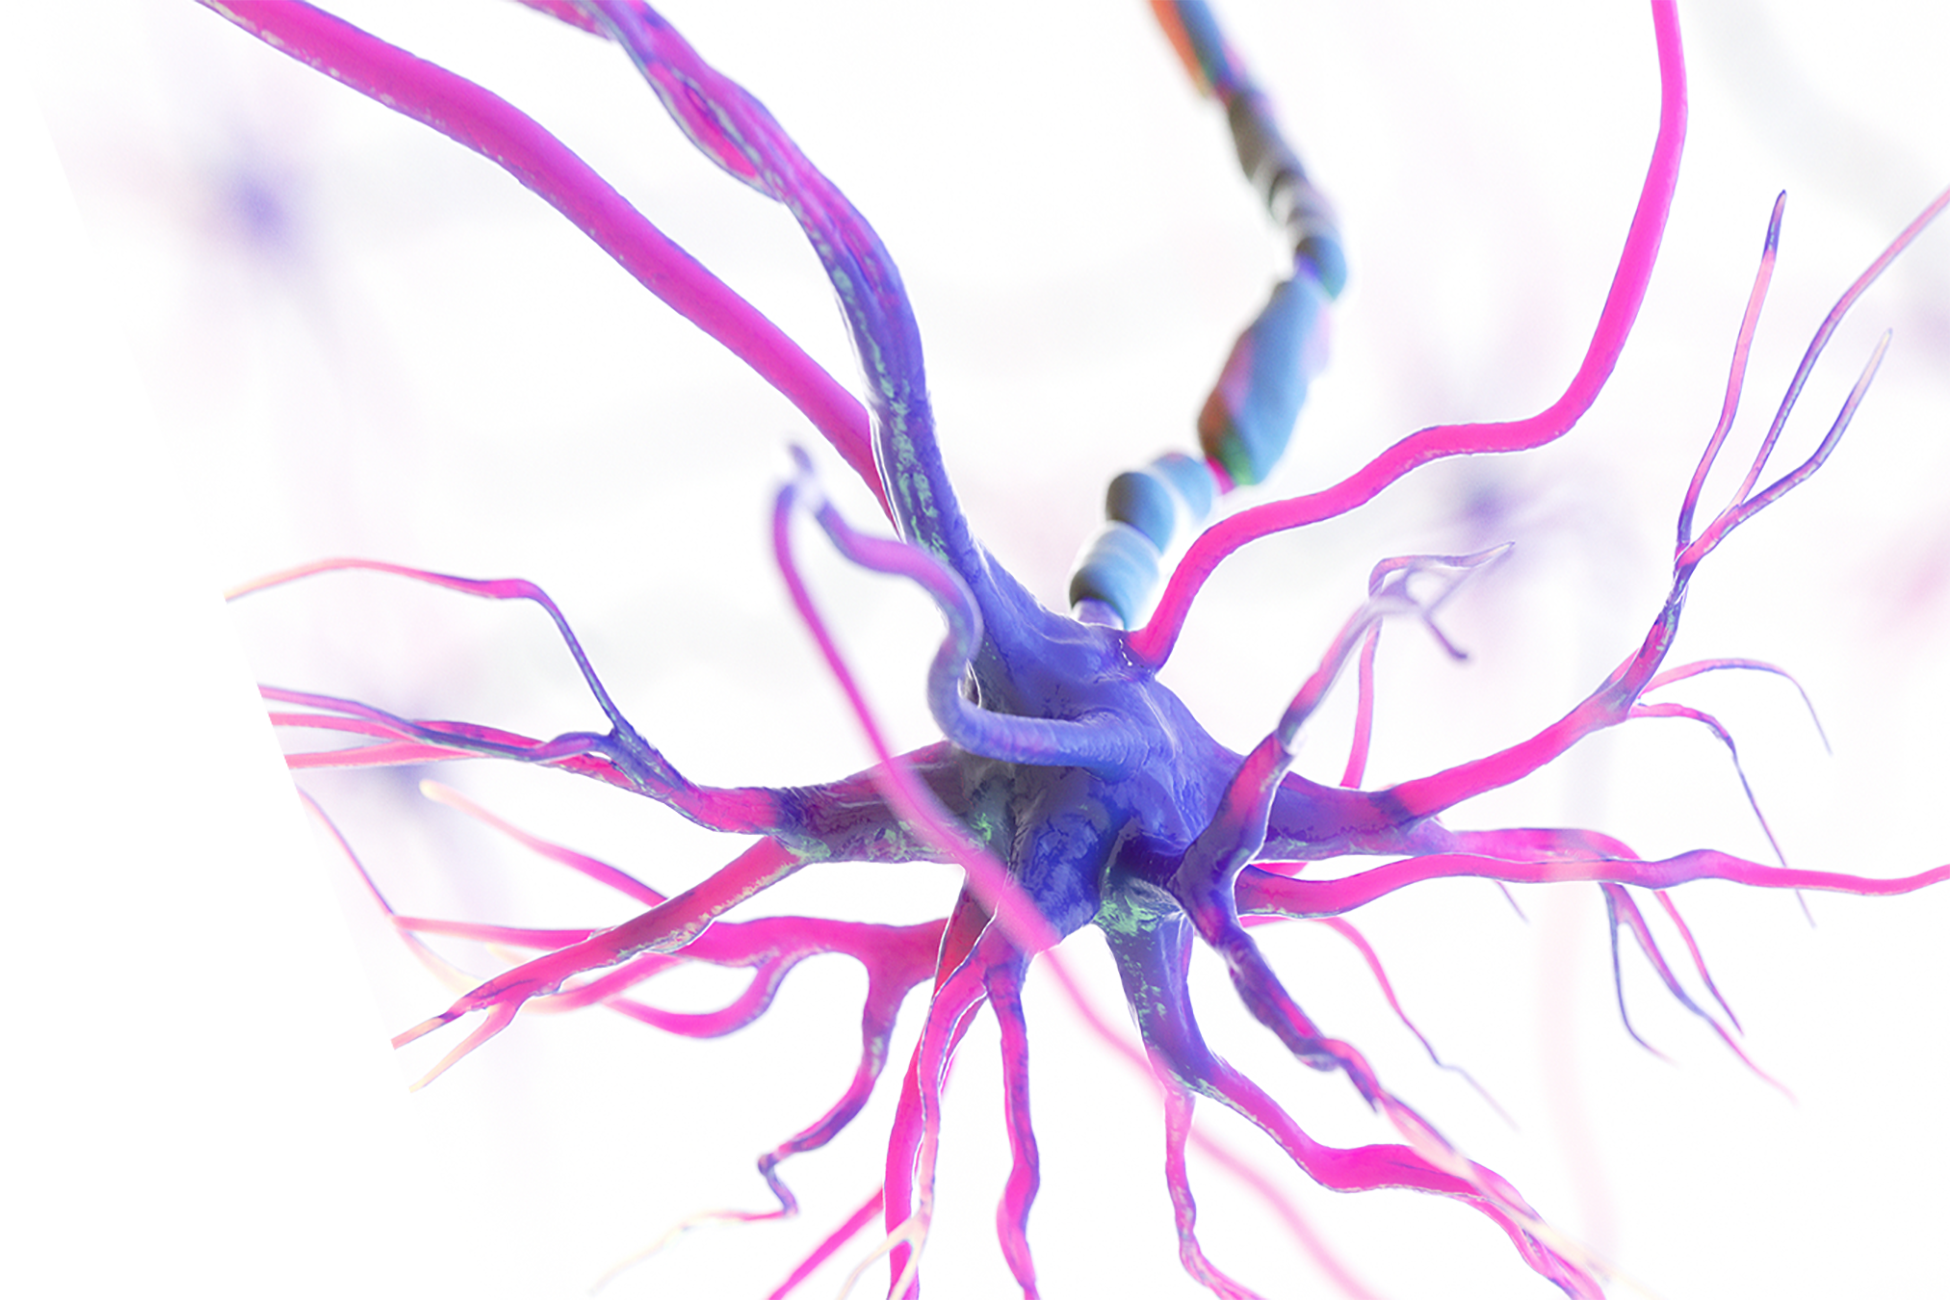 Pure Medical Group - HBOT Brain Cells 3